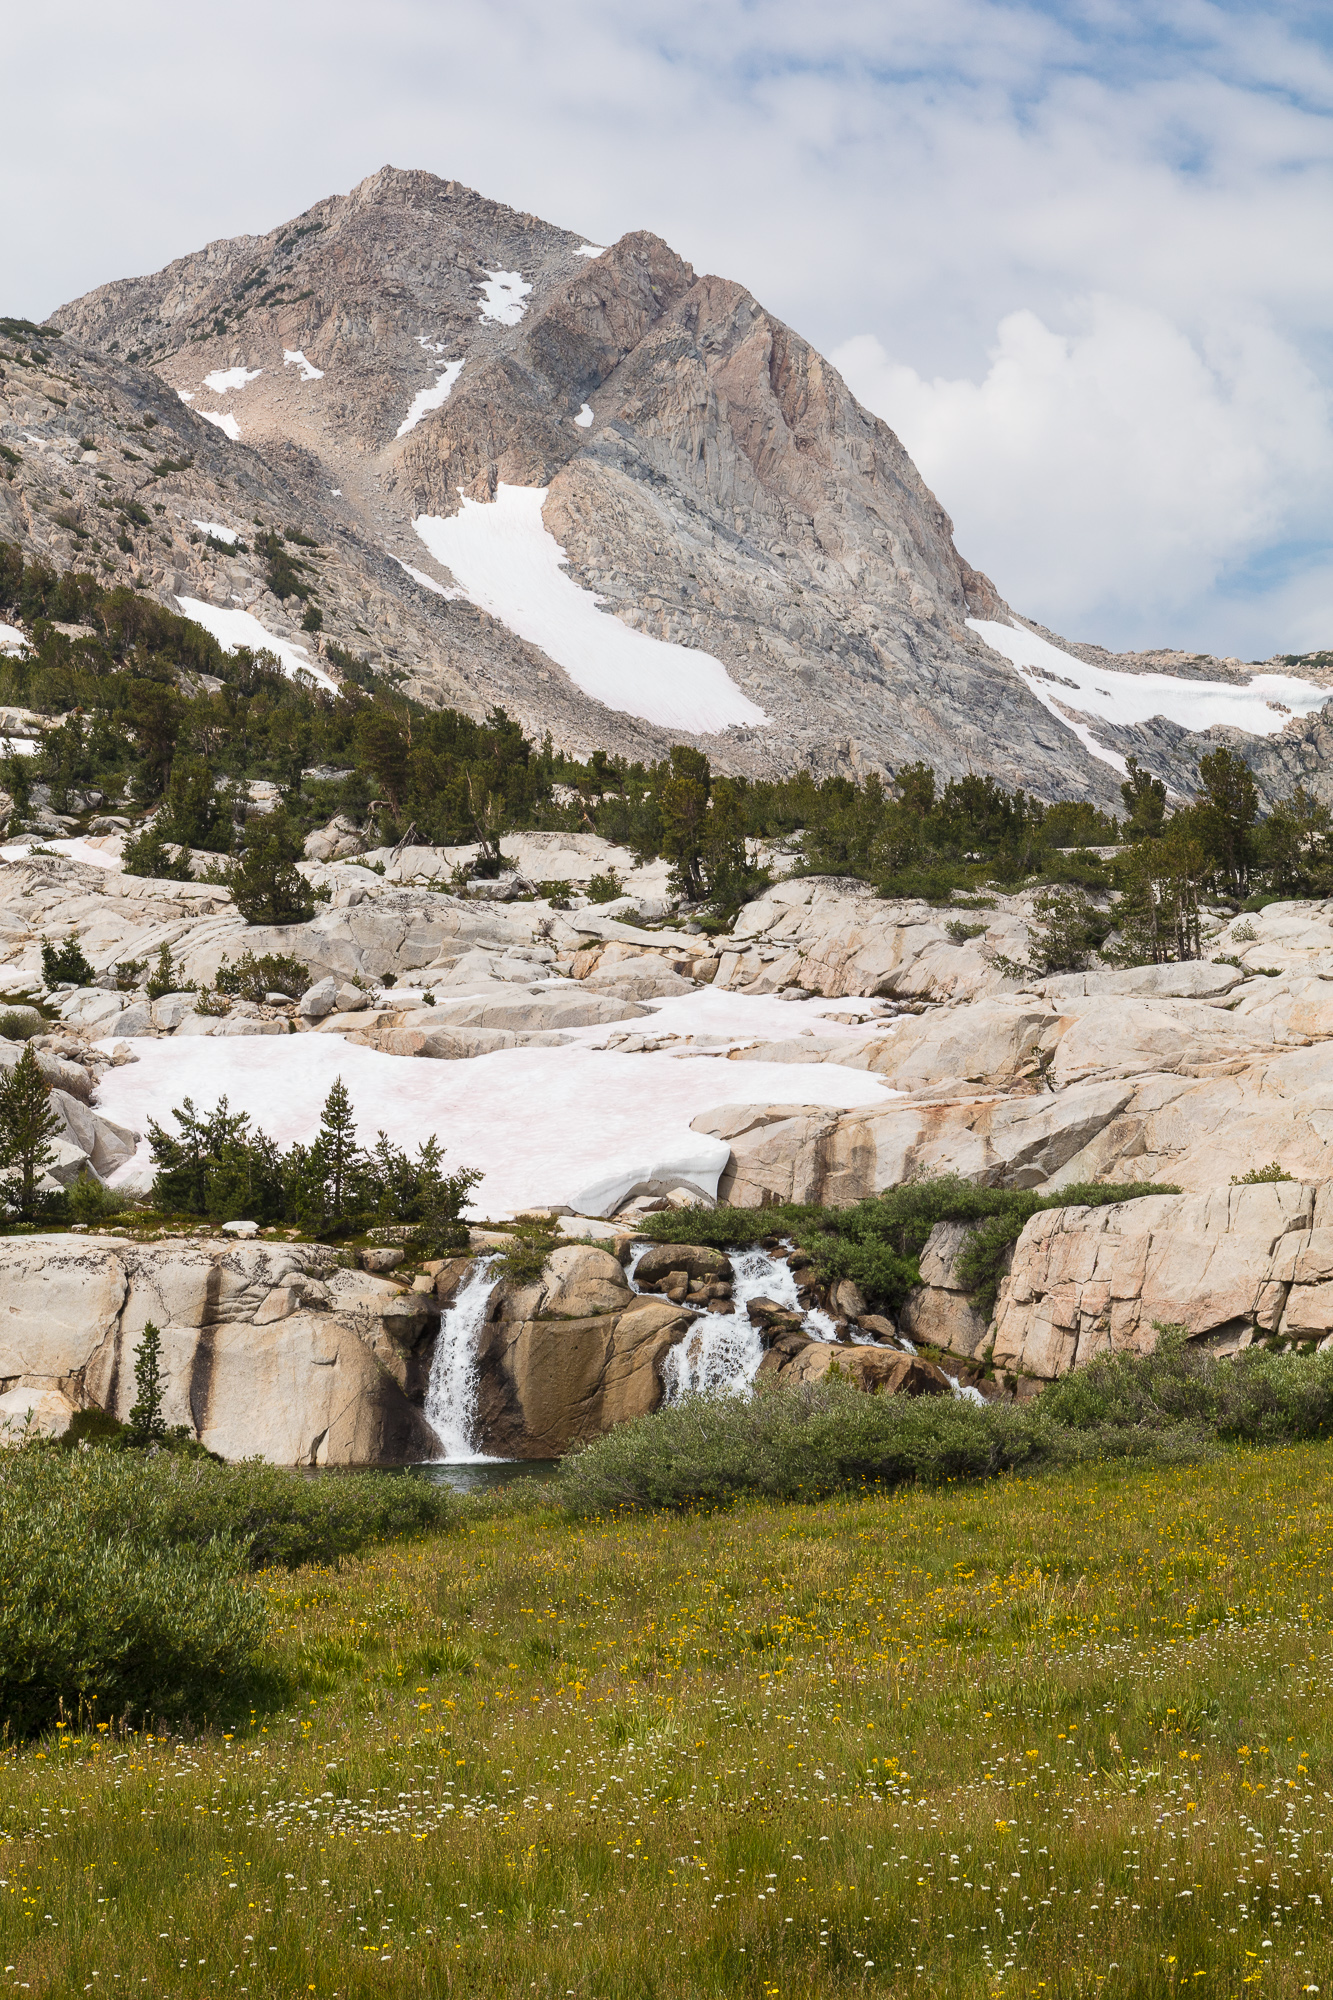 Snowmelt feeds waterfalls on the climb up to Piute Pass, Inyo National Forest, CA.